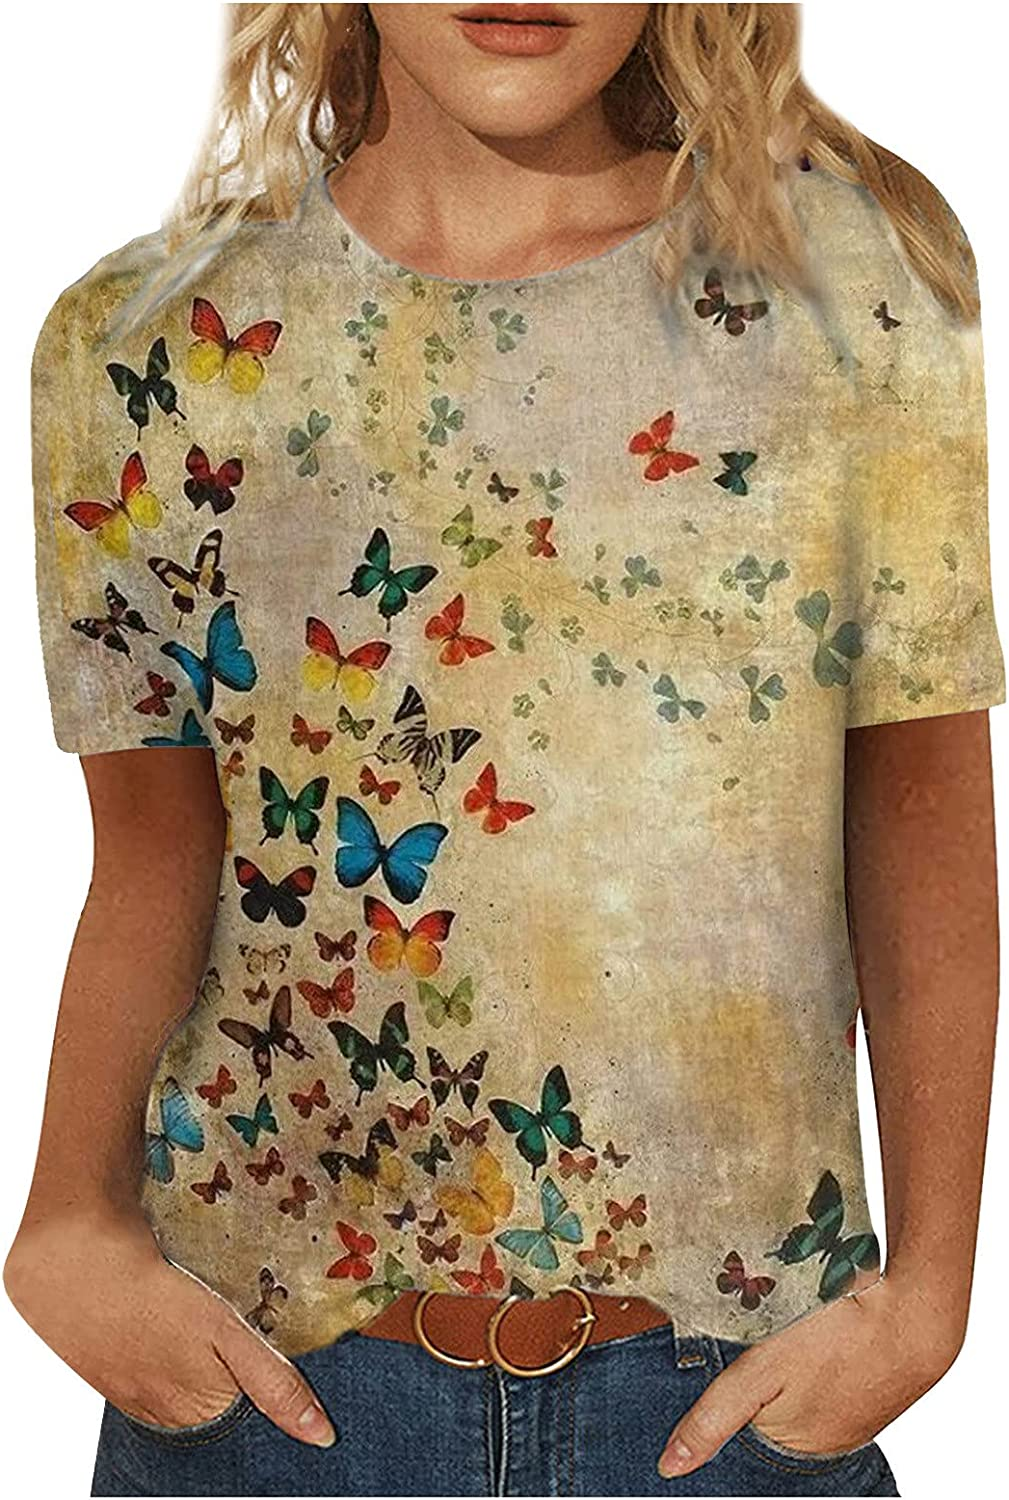 Tops for Women Summer Casual Short Sleeve Floral Tees Tunic Tops Workout Shirts Blouses Loose Fit Womens Tshirts